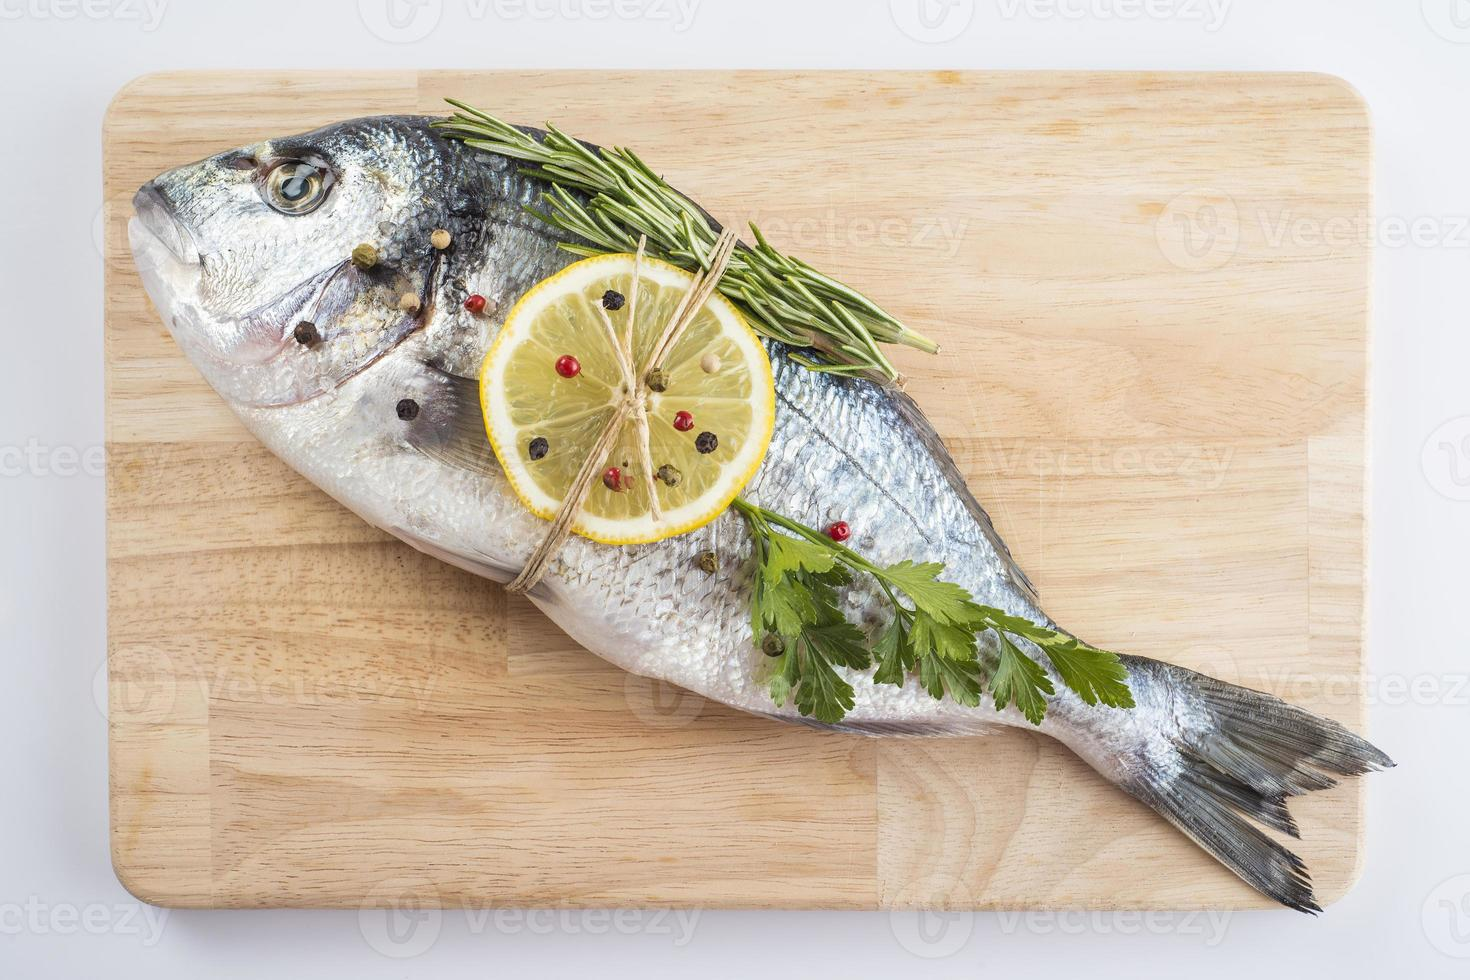 Gilt-head sea bream with spices and herbs photo